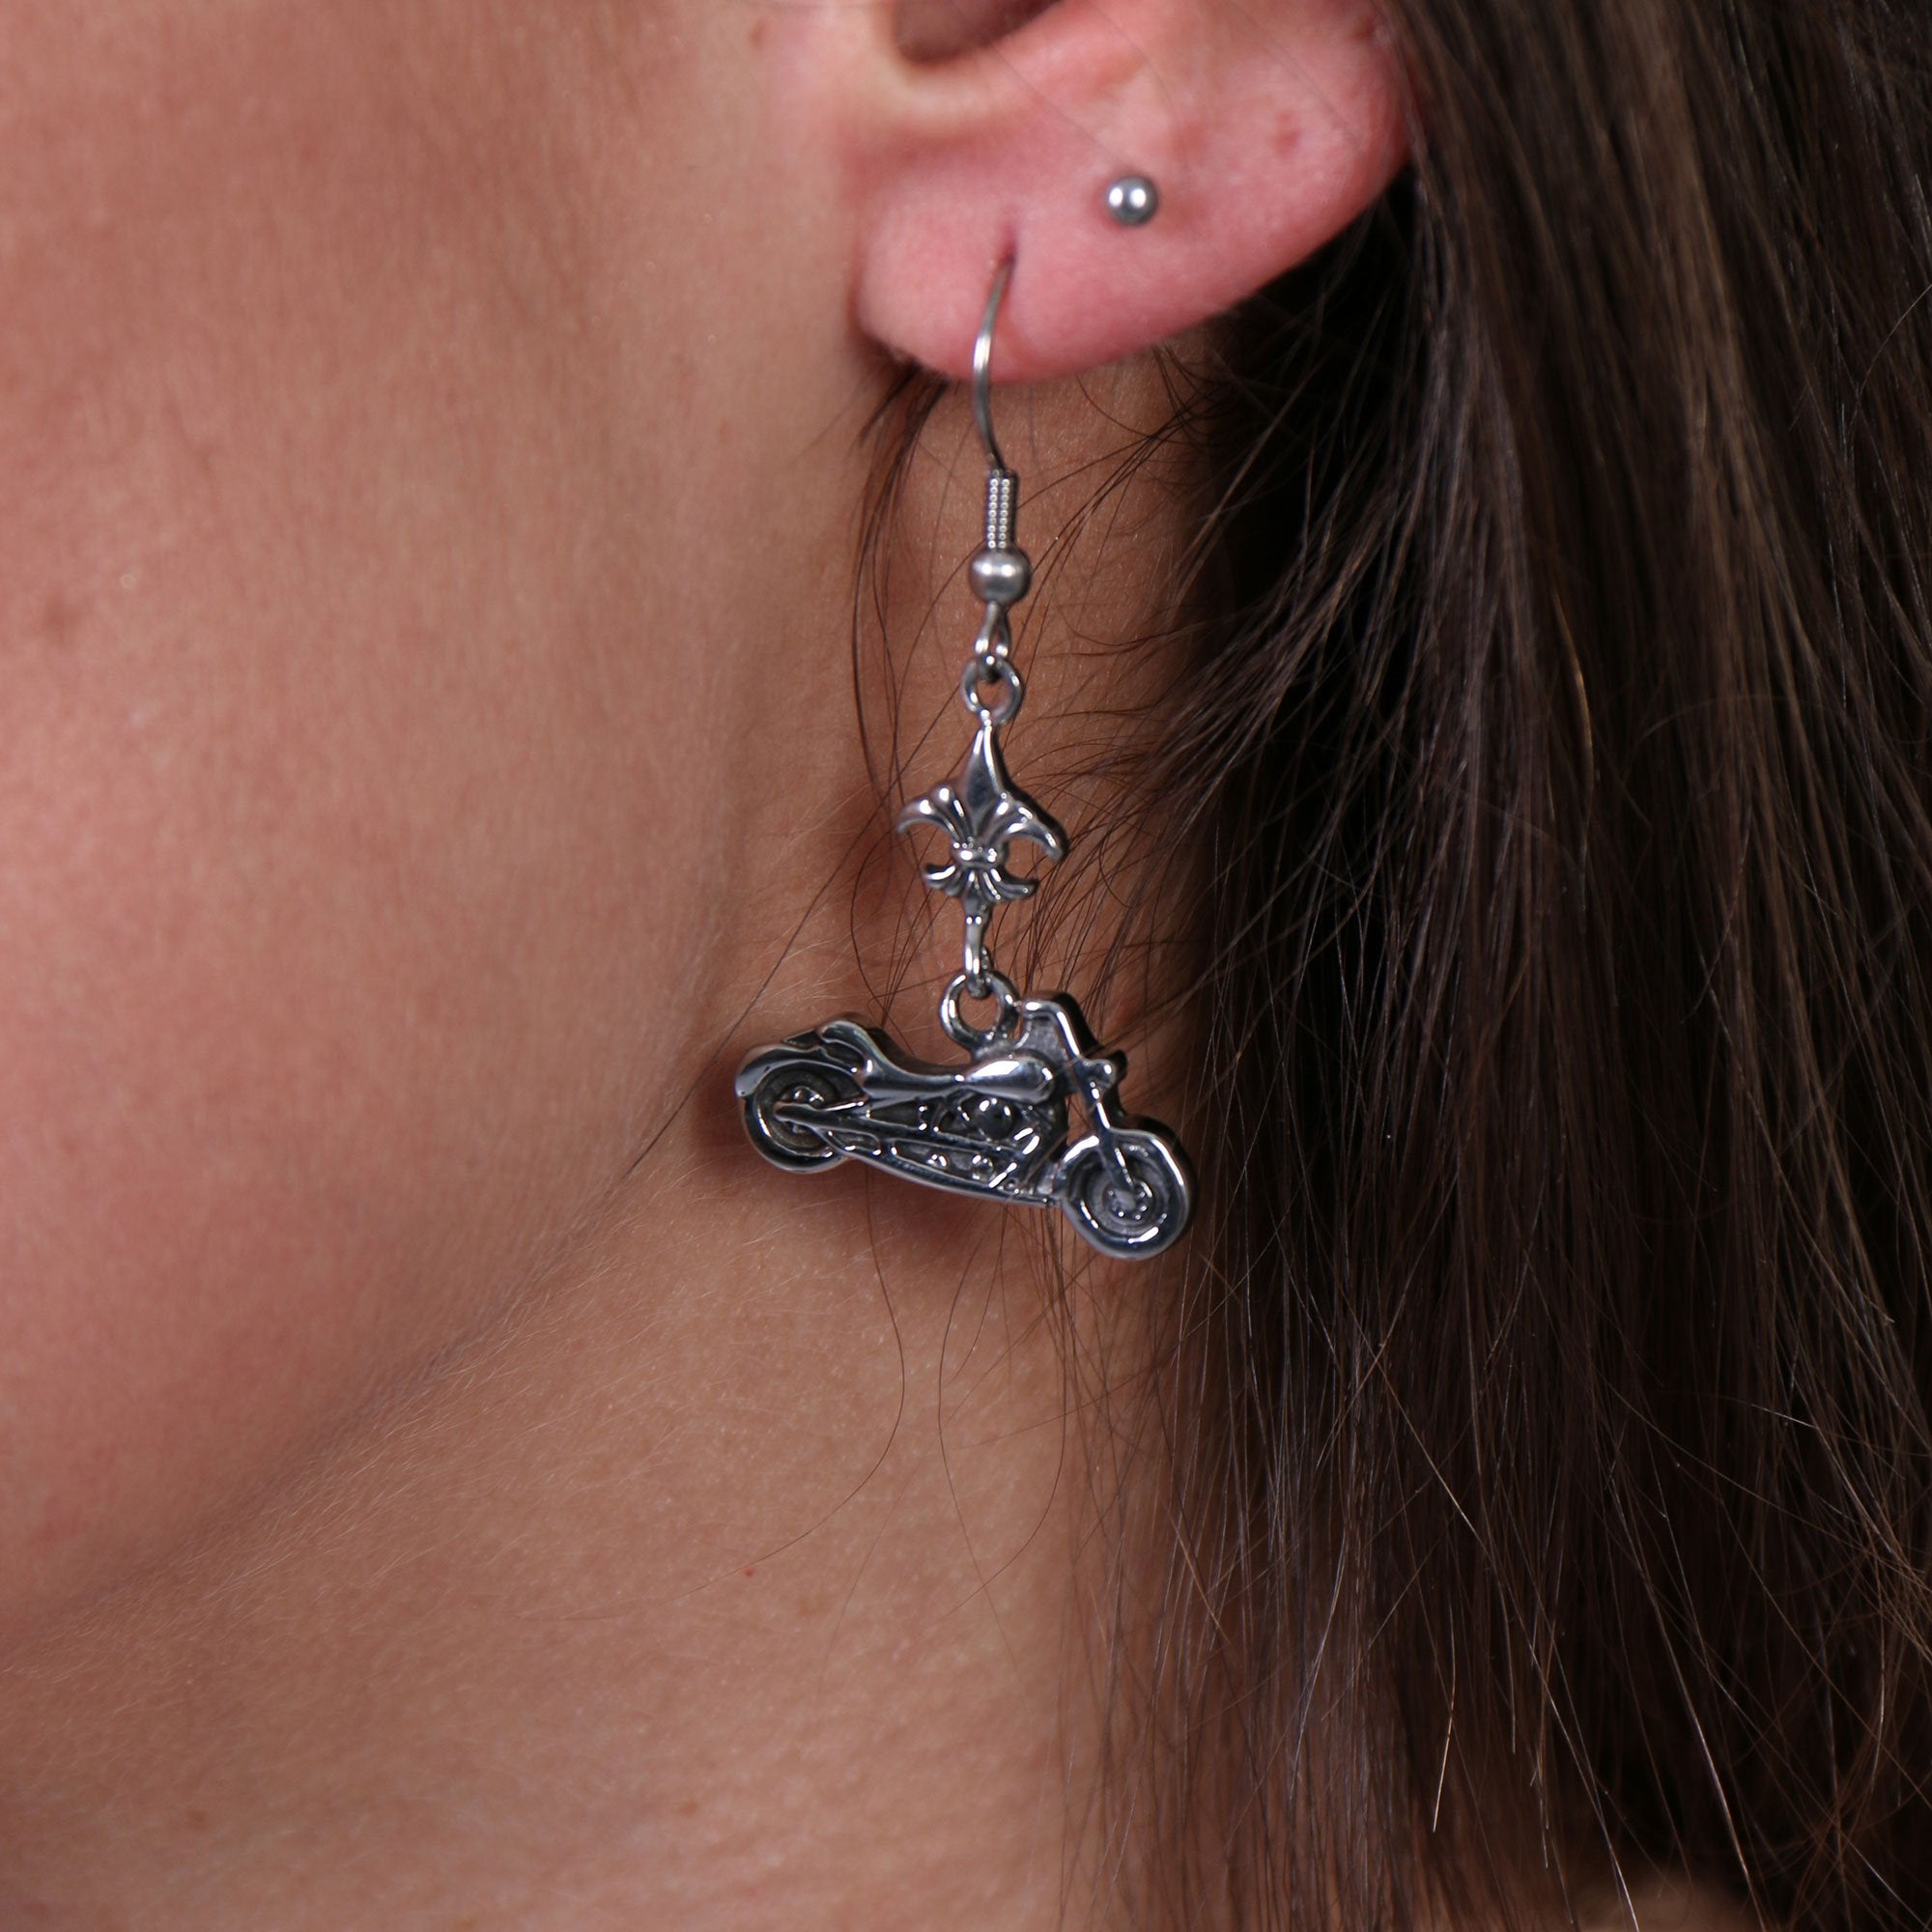 Hot Leathers JWE1105 Womens Motorcycle Fleur De Lis Earrings